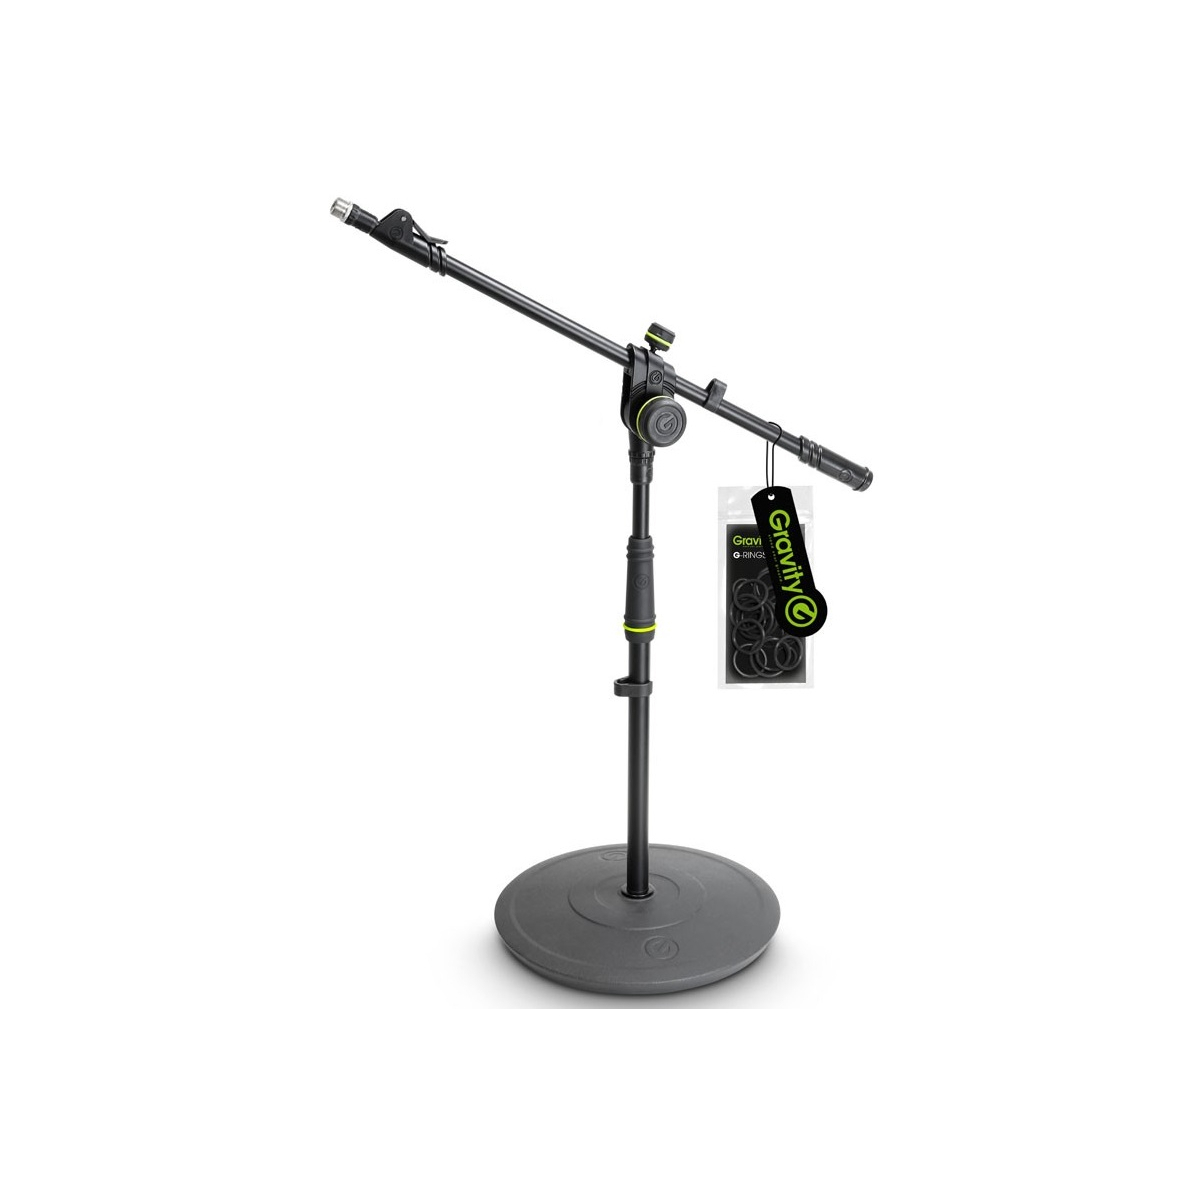 Pieds micros perches - Gravity - MS 2222 B